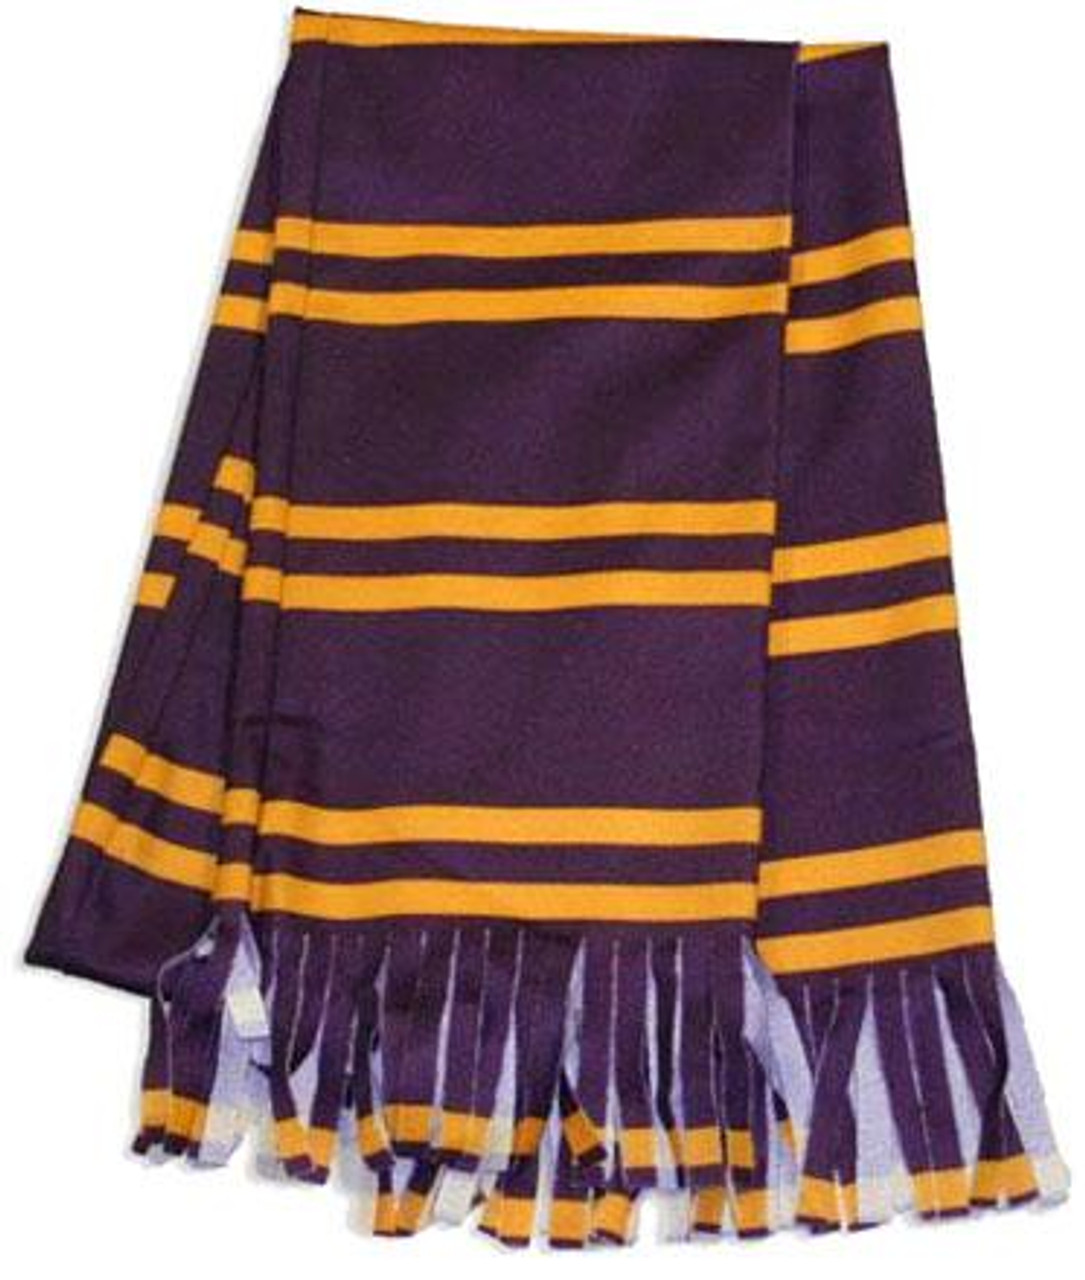 Harry Potter Hogwart's Scarf Costume Accessory #7257